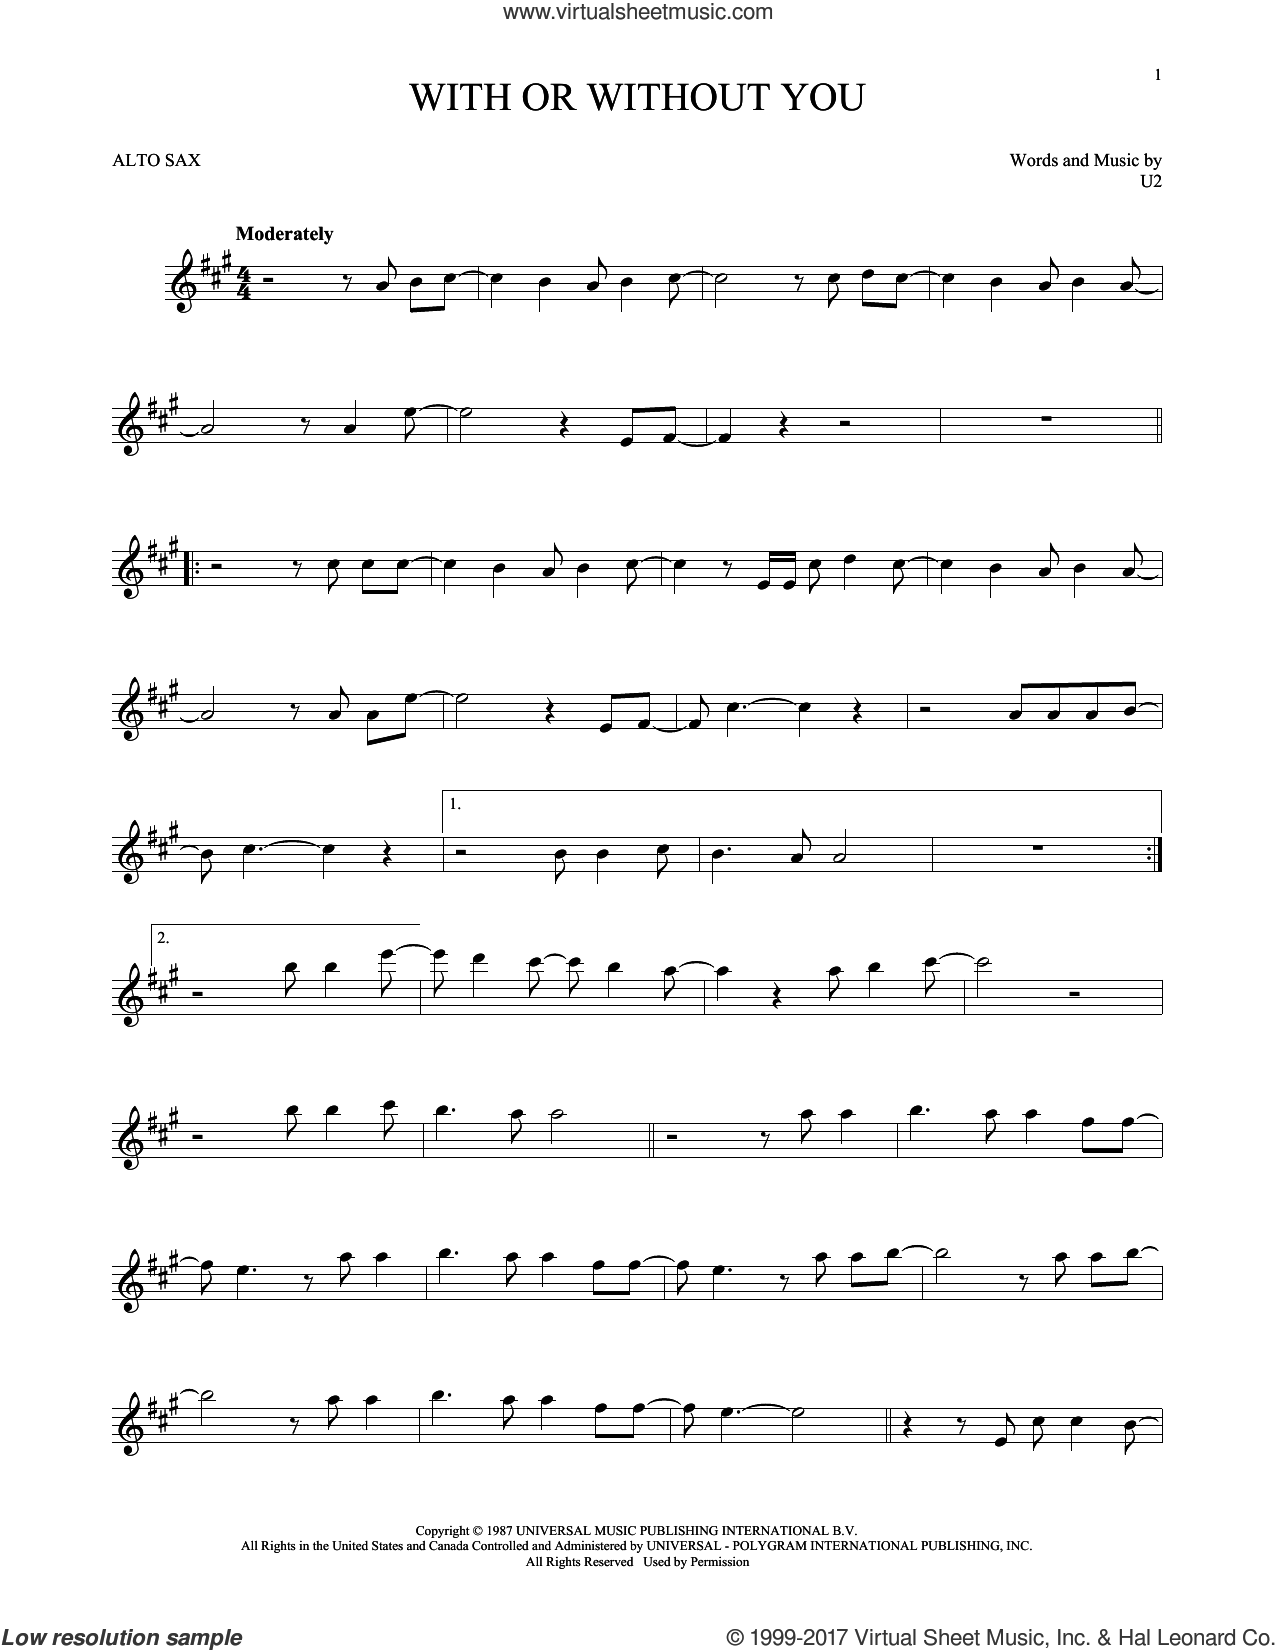 With Or Without You sheet music for alto saxophone solo ( Sax) by U2, intermediate alto saxophone ( Sax). Score Image Preview.